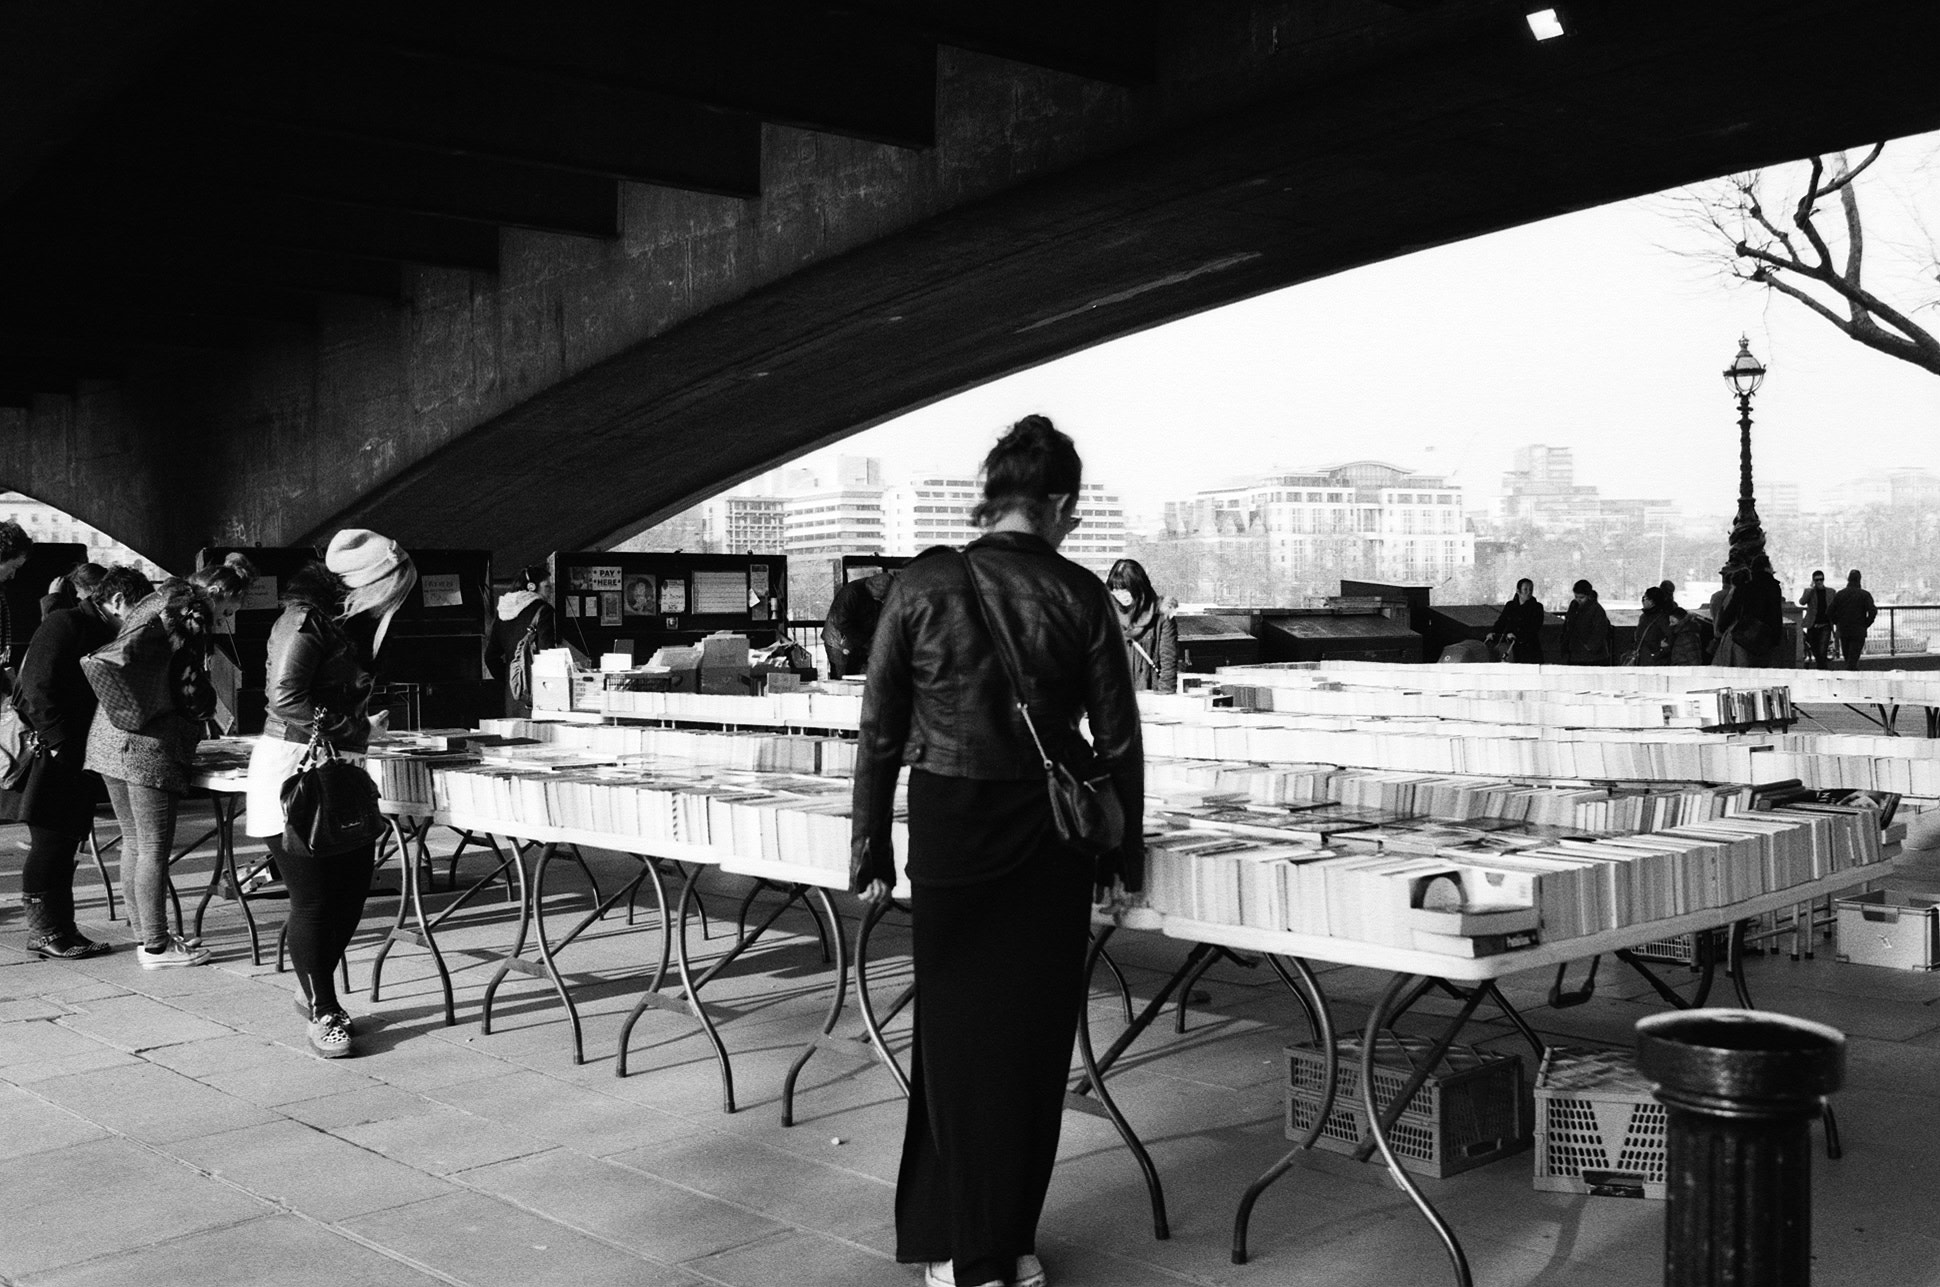 Photograph Southbank Center book market by Ilva Ferretti on 500px